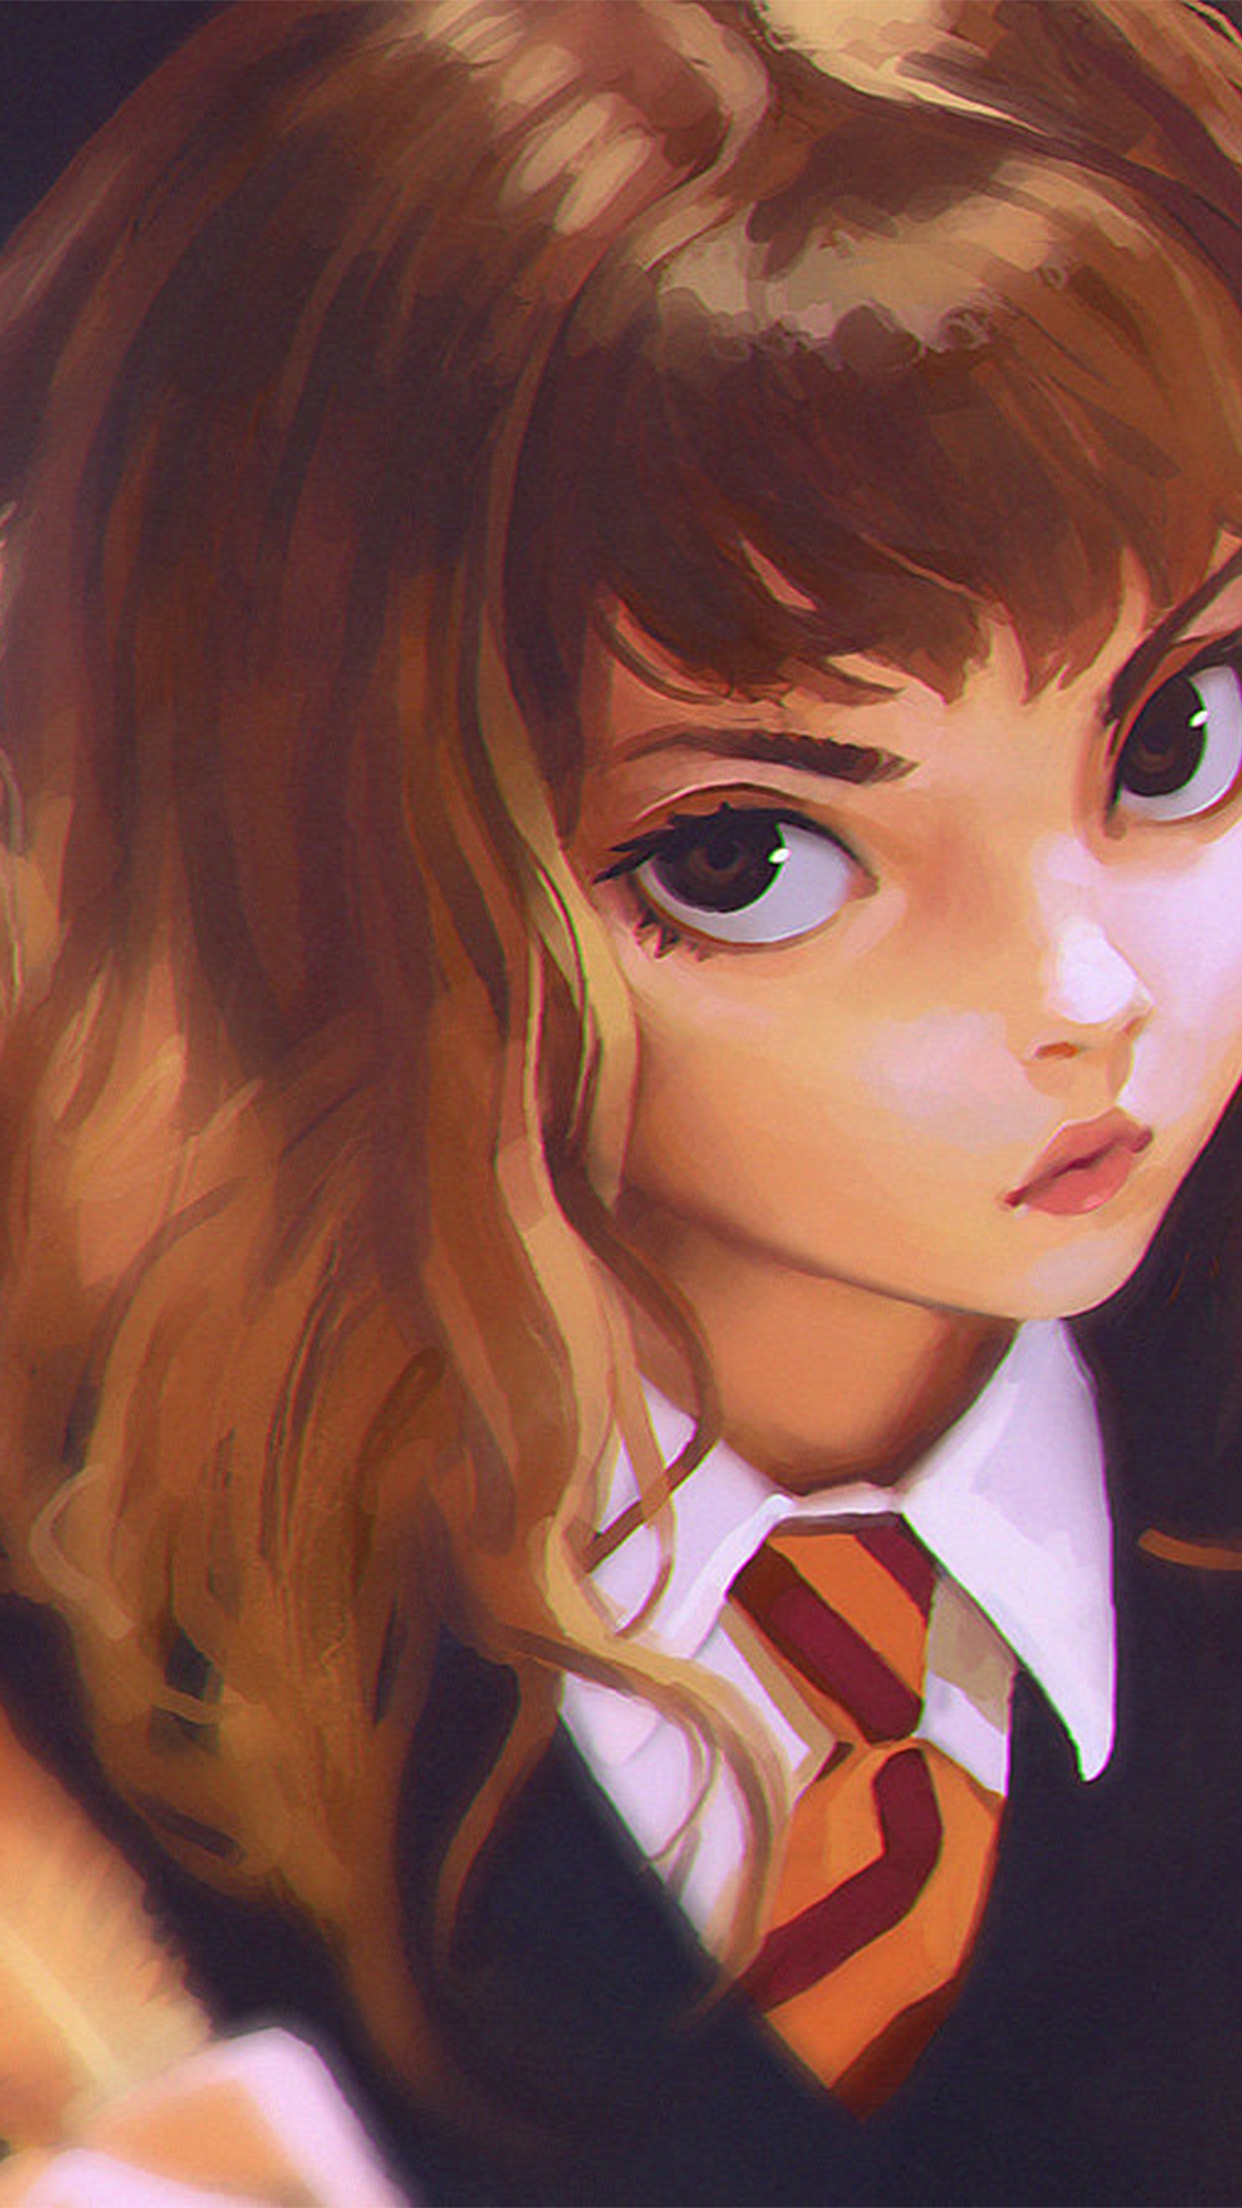 Samsung Car Wallpaper Bd65 Hermione Harry Potter Liya Art Illustration Wallpaper